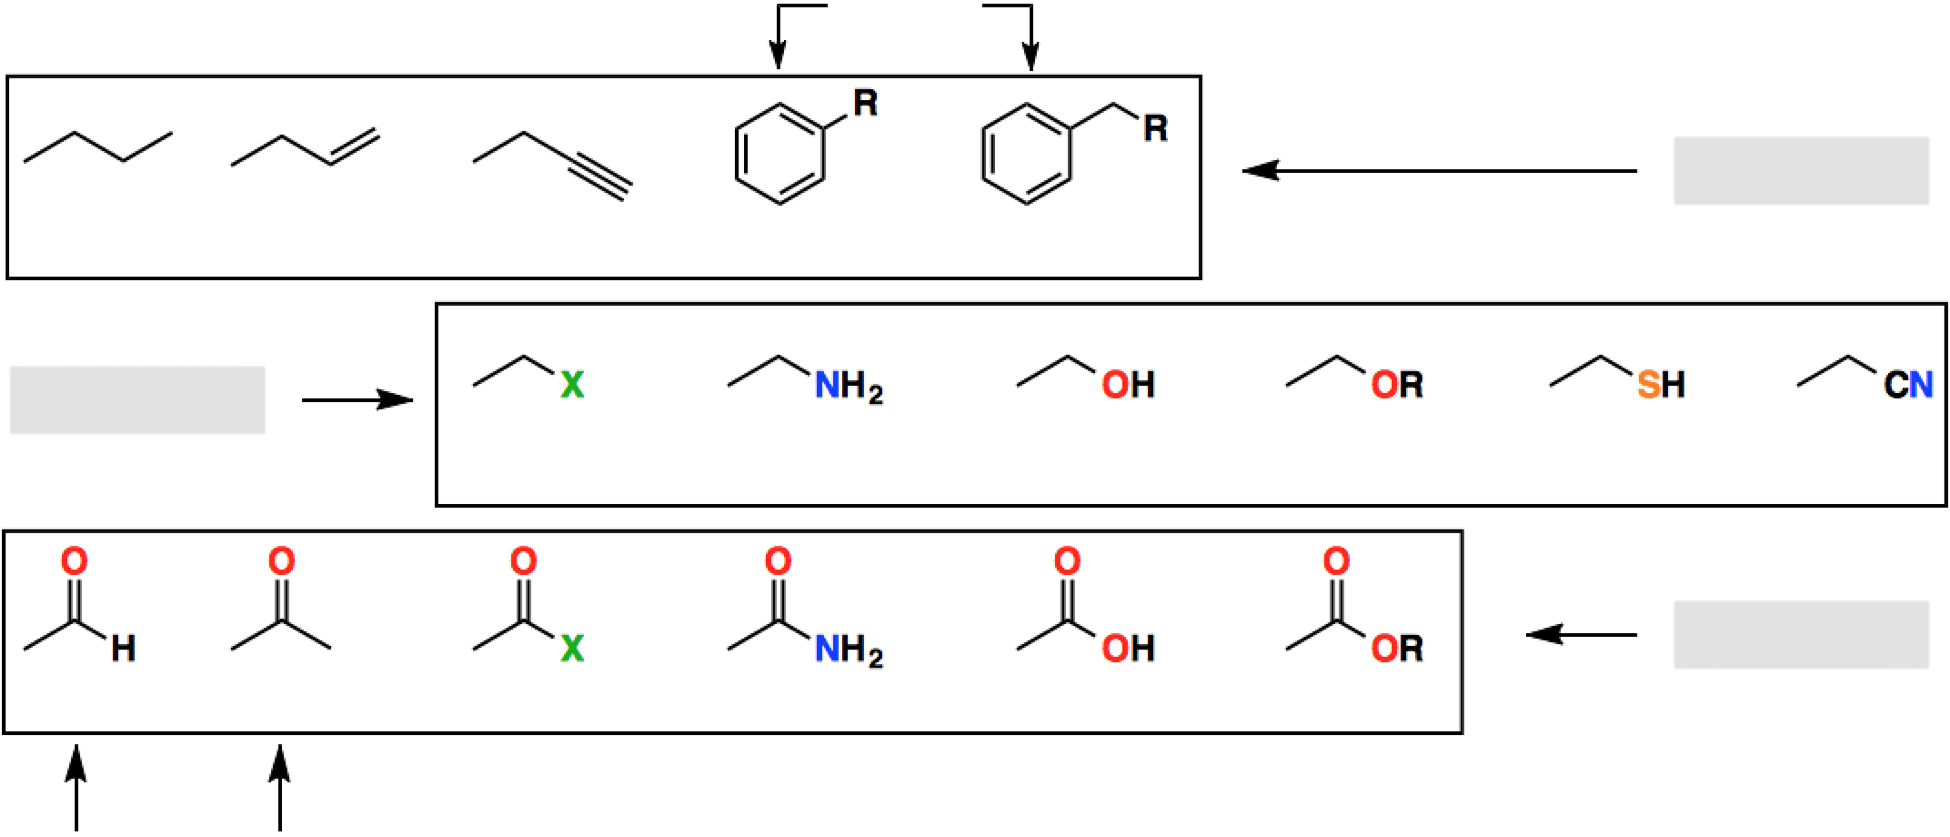 blank-list-of-functional-groups